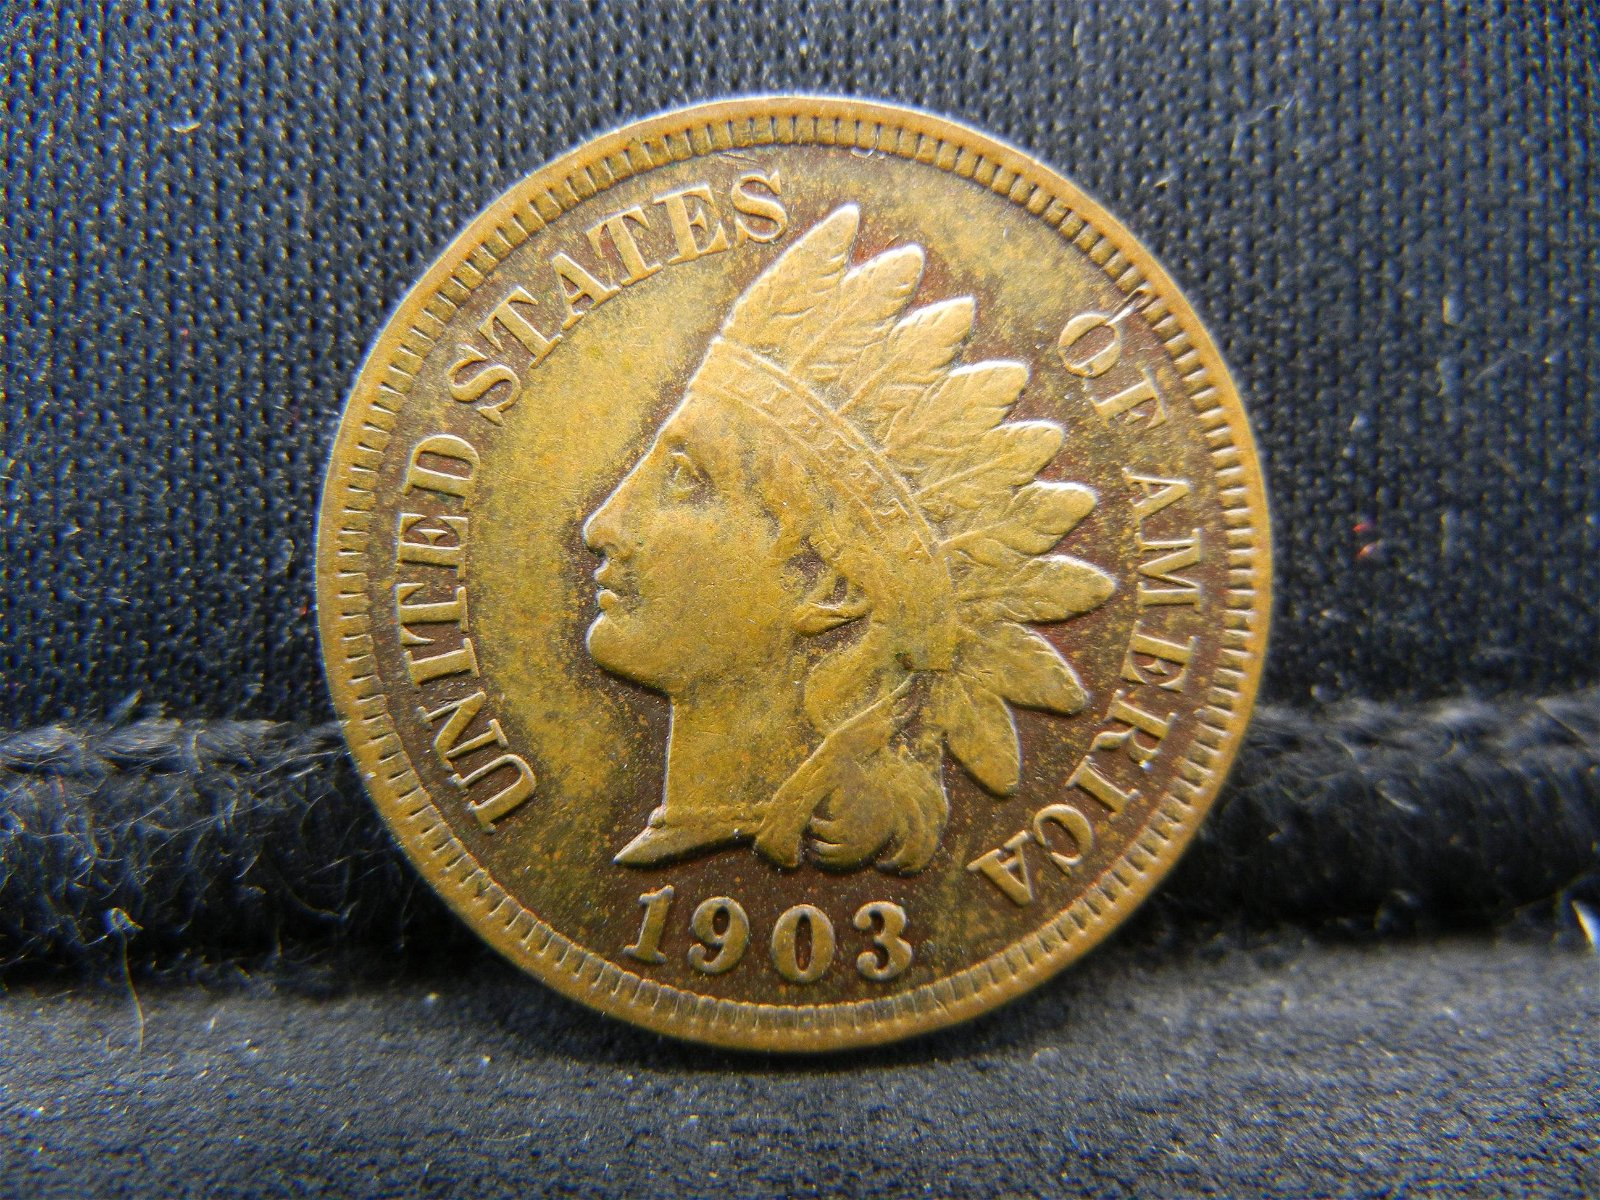 1903 United States Indian Head Penny Cent